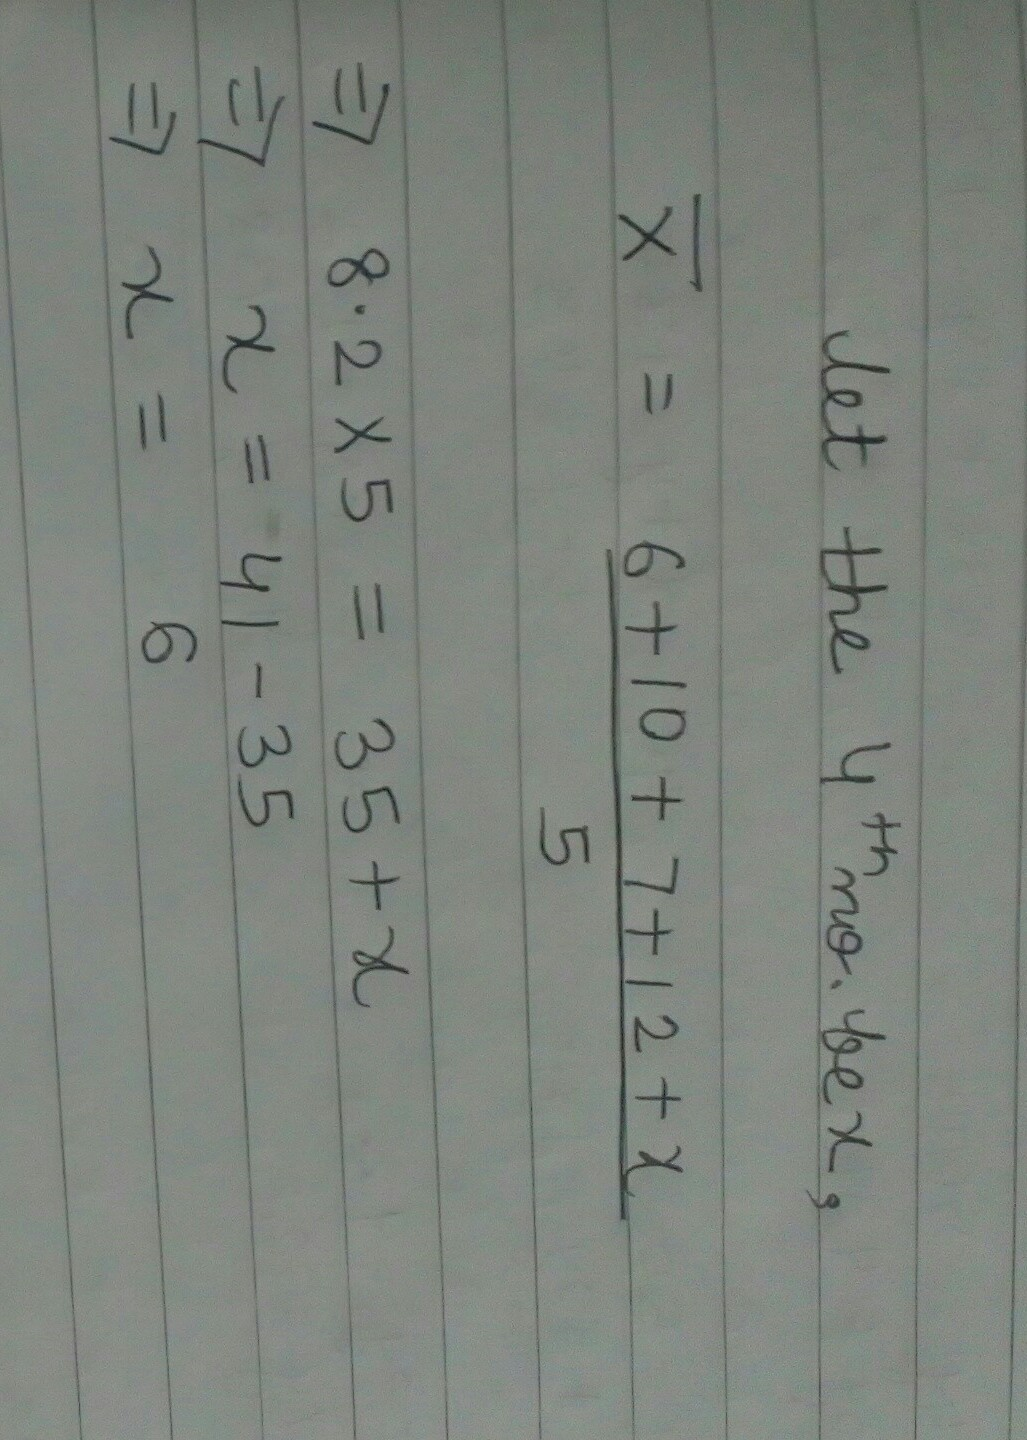 if the mean of five values is 8.2 and four of the values